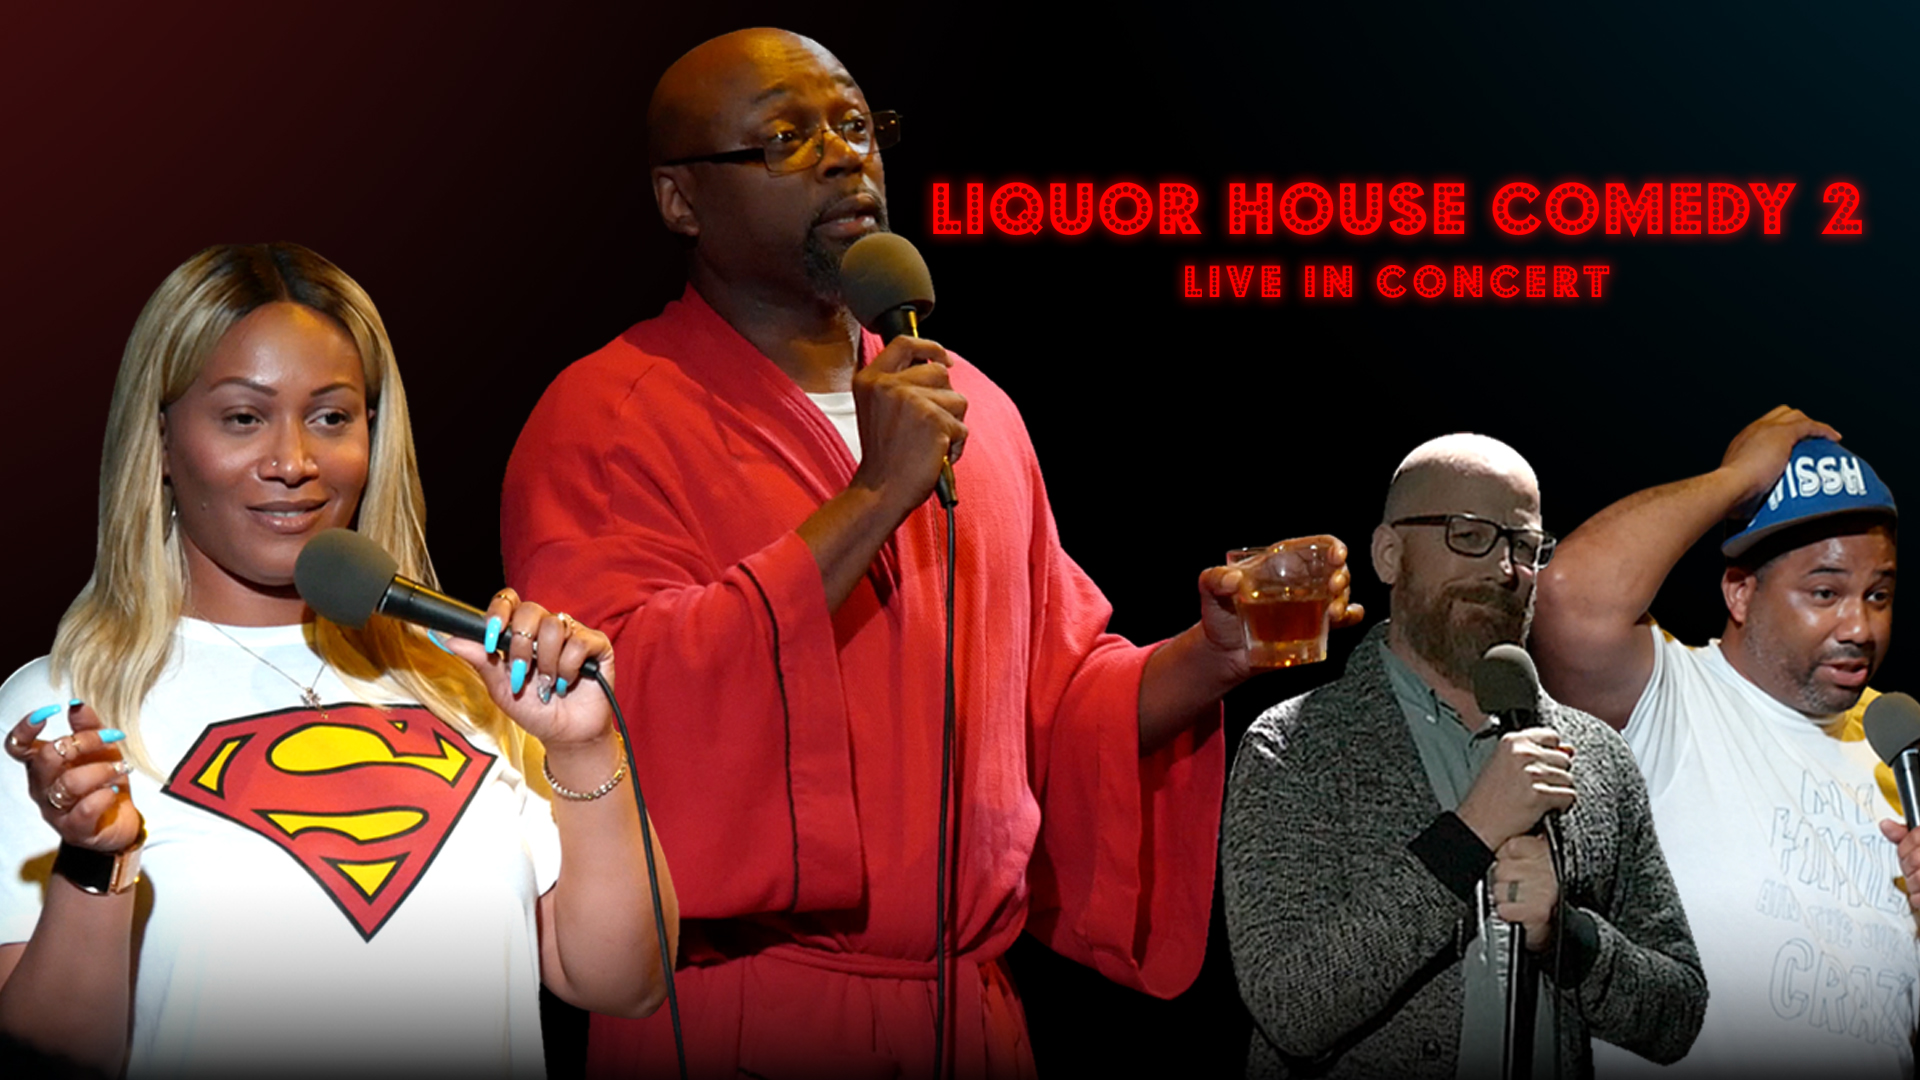 Liquor House Comedy 2